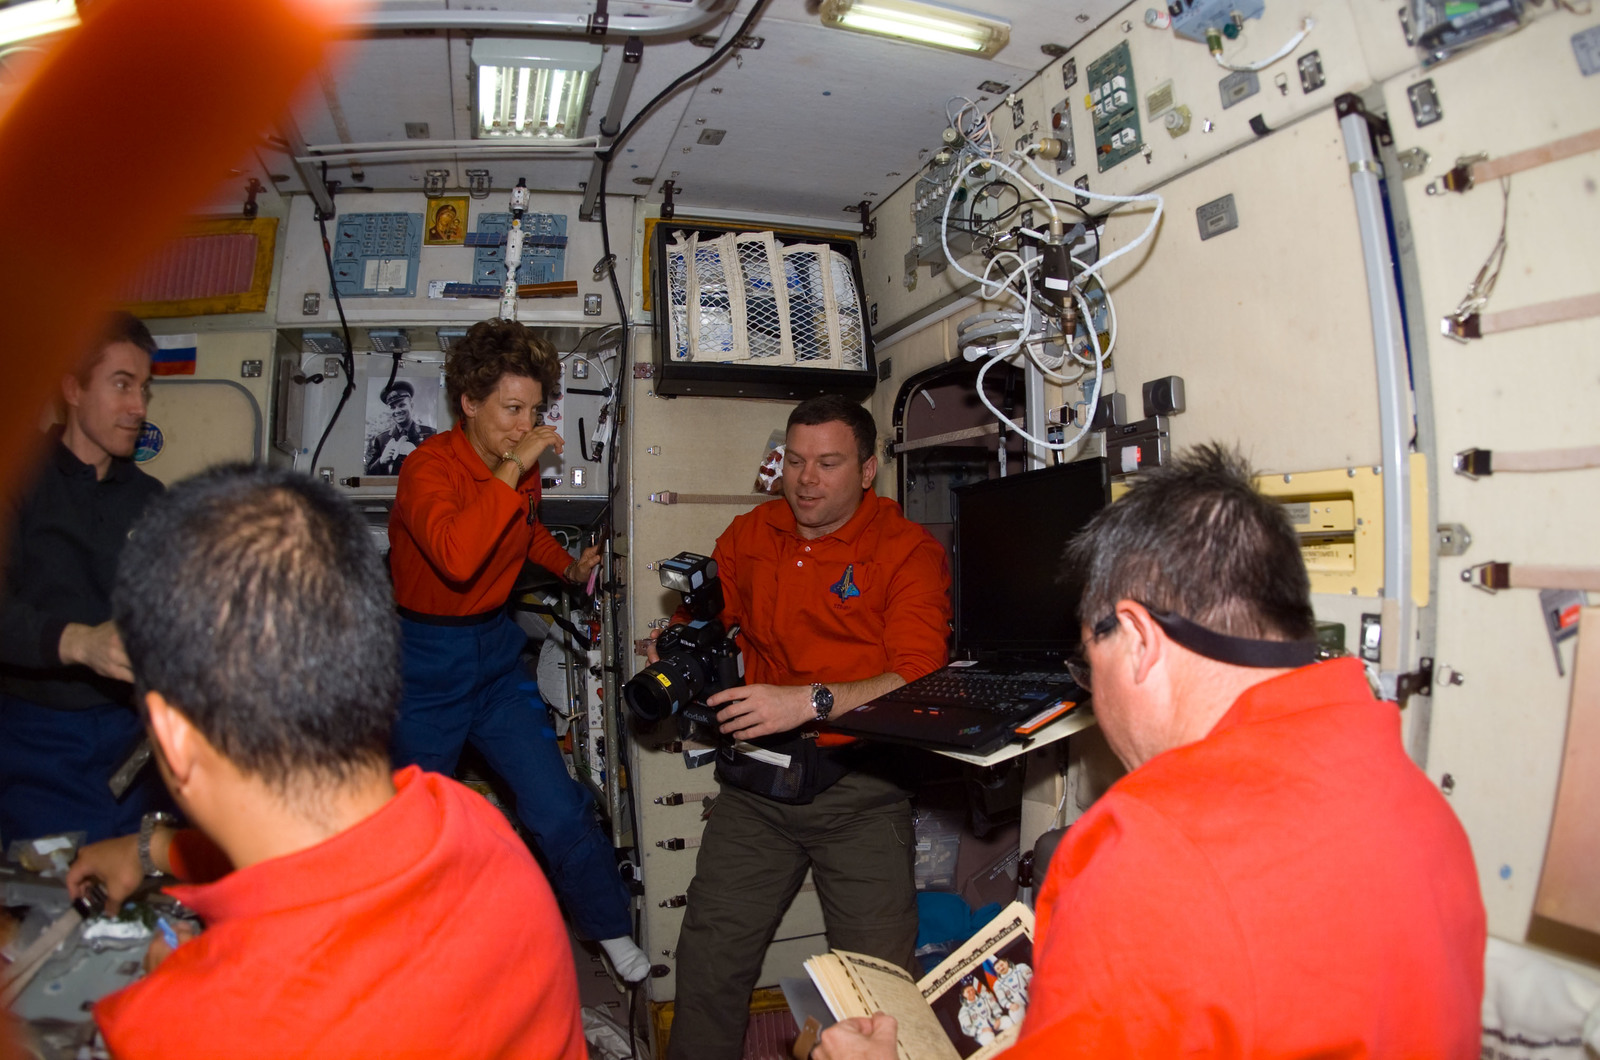 S114E7016 - STS-114 - STS-114 and Expedition 11 crew in Service module